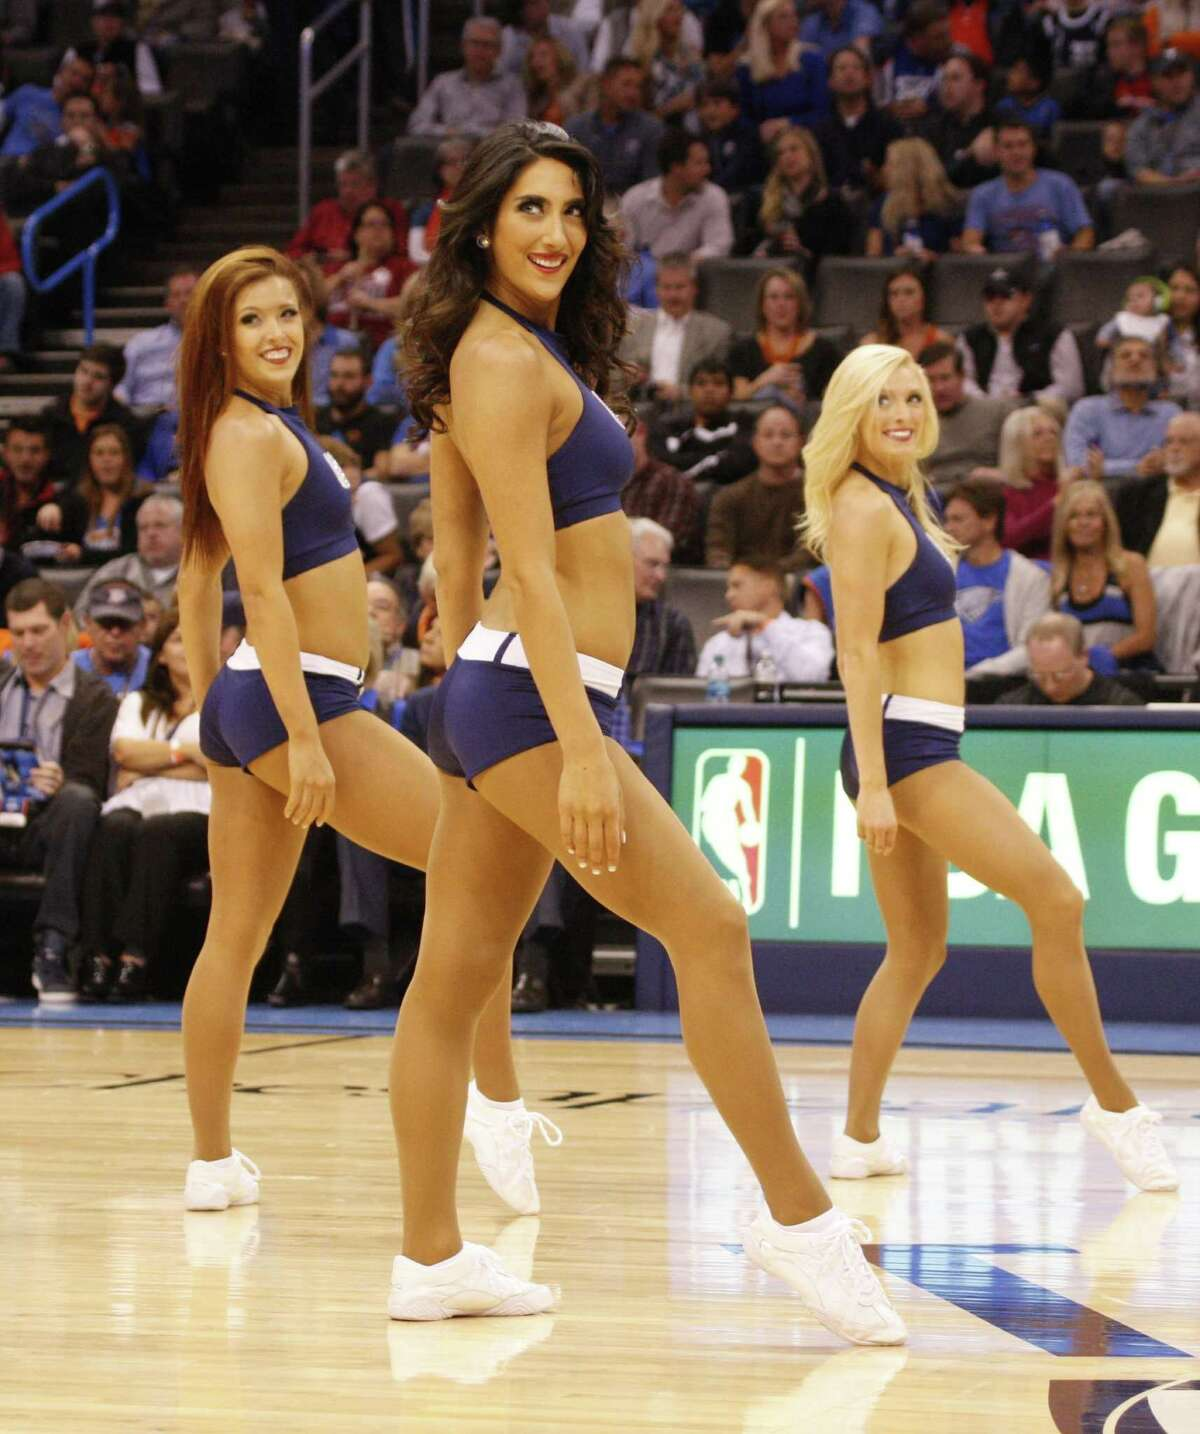 The Woodlands' Kara Robinson recently signed her second season contract with the NBAés Oklahoma City Thunder to dance as a Thunder Girl.